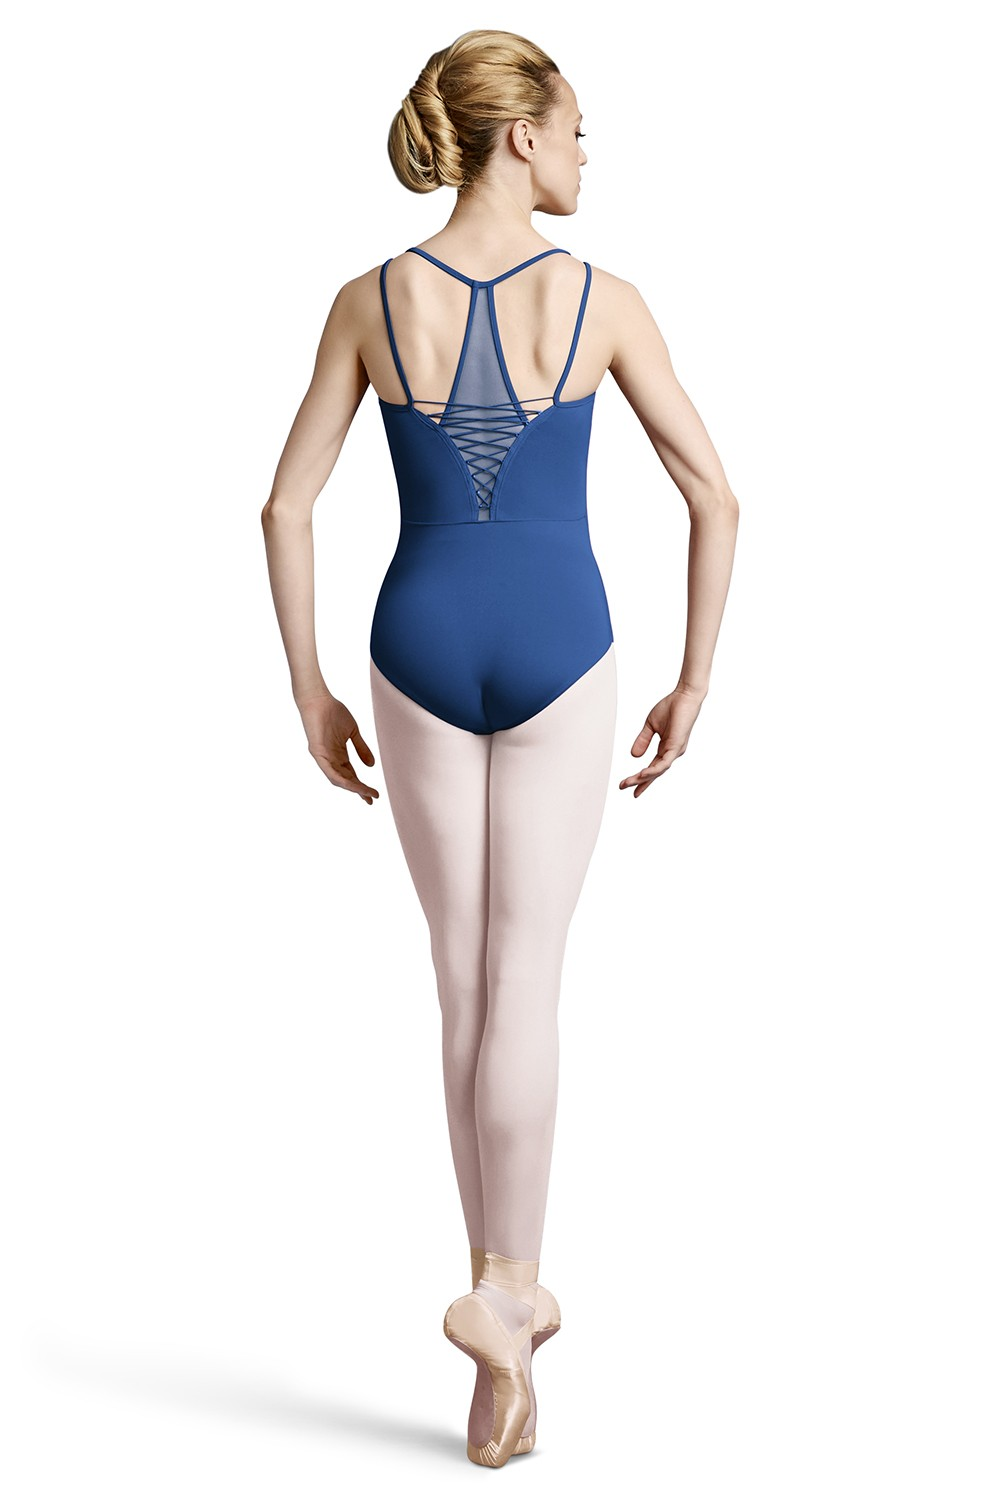 Clidna Children's Dance Leotards